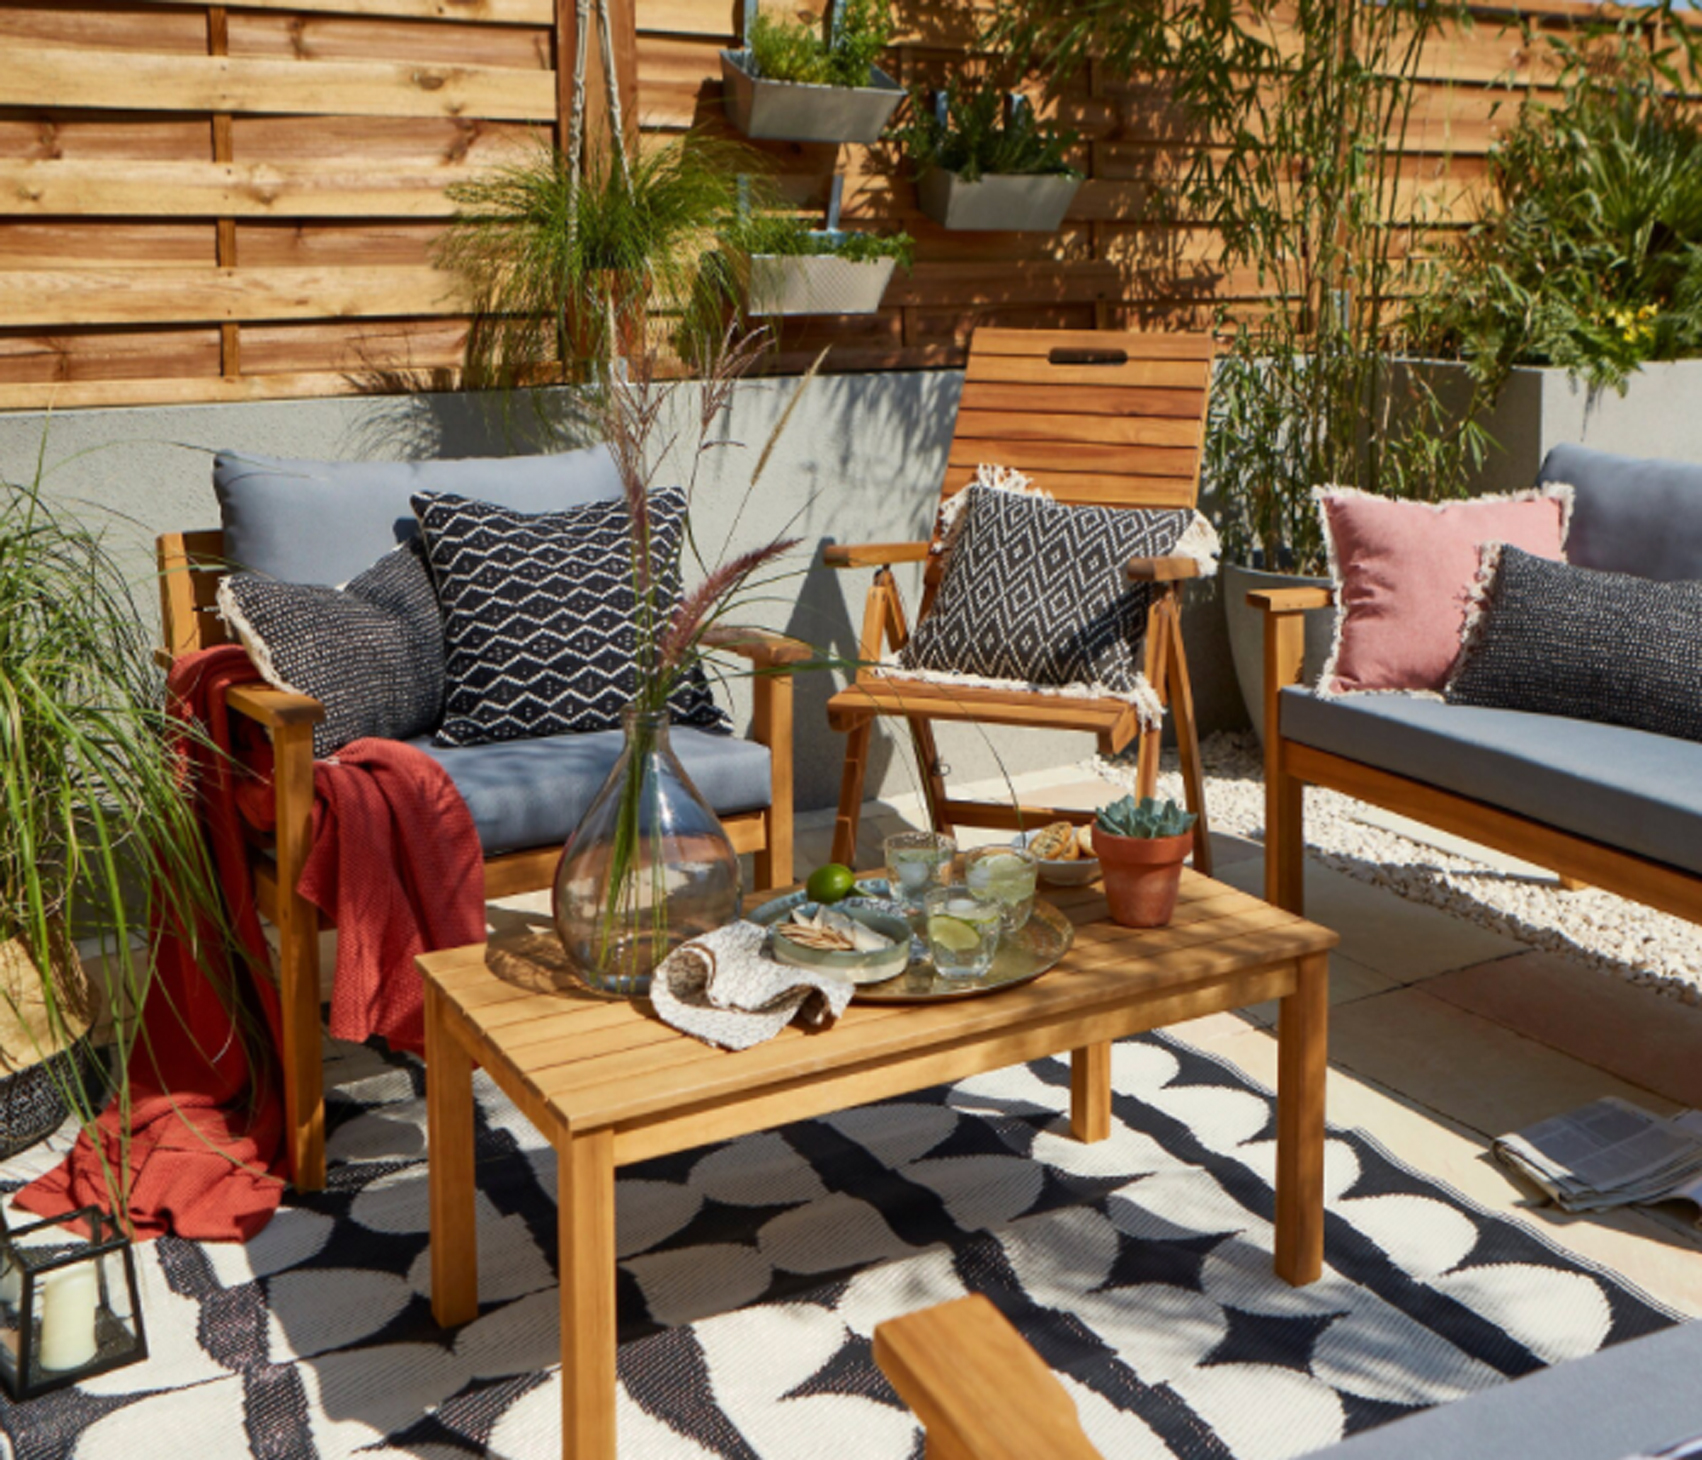 B Q Garden Furniture Has 20 Off Relax Outside In Style For Less Real Homes